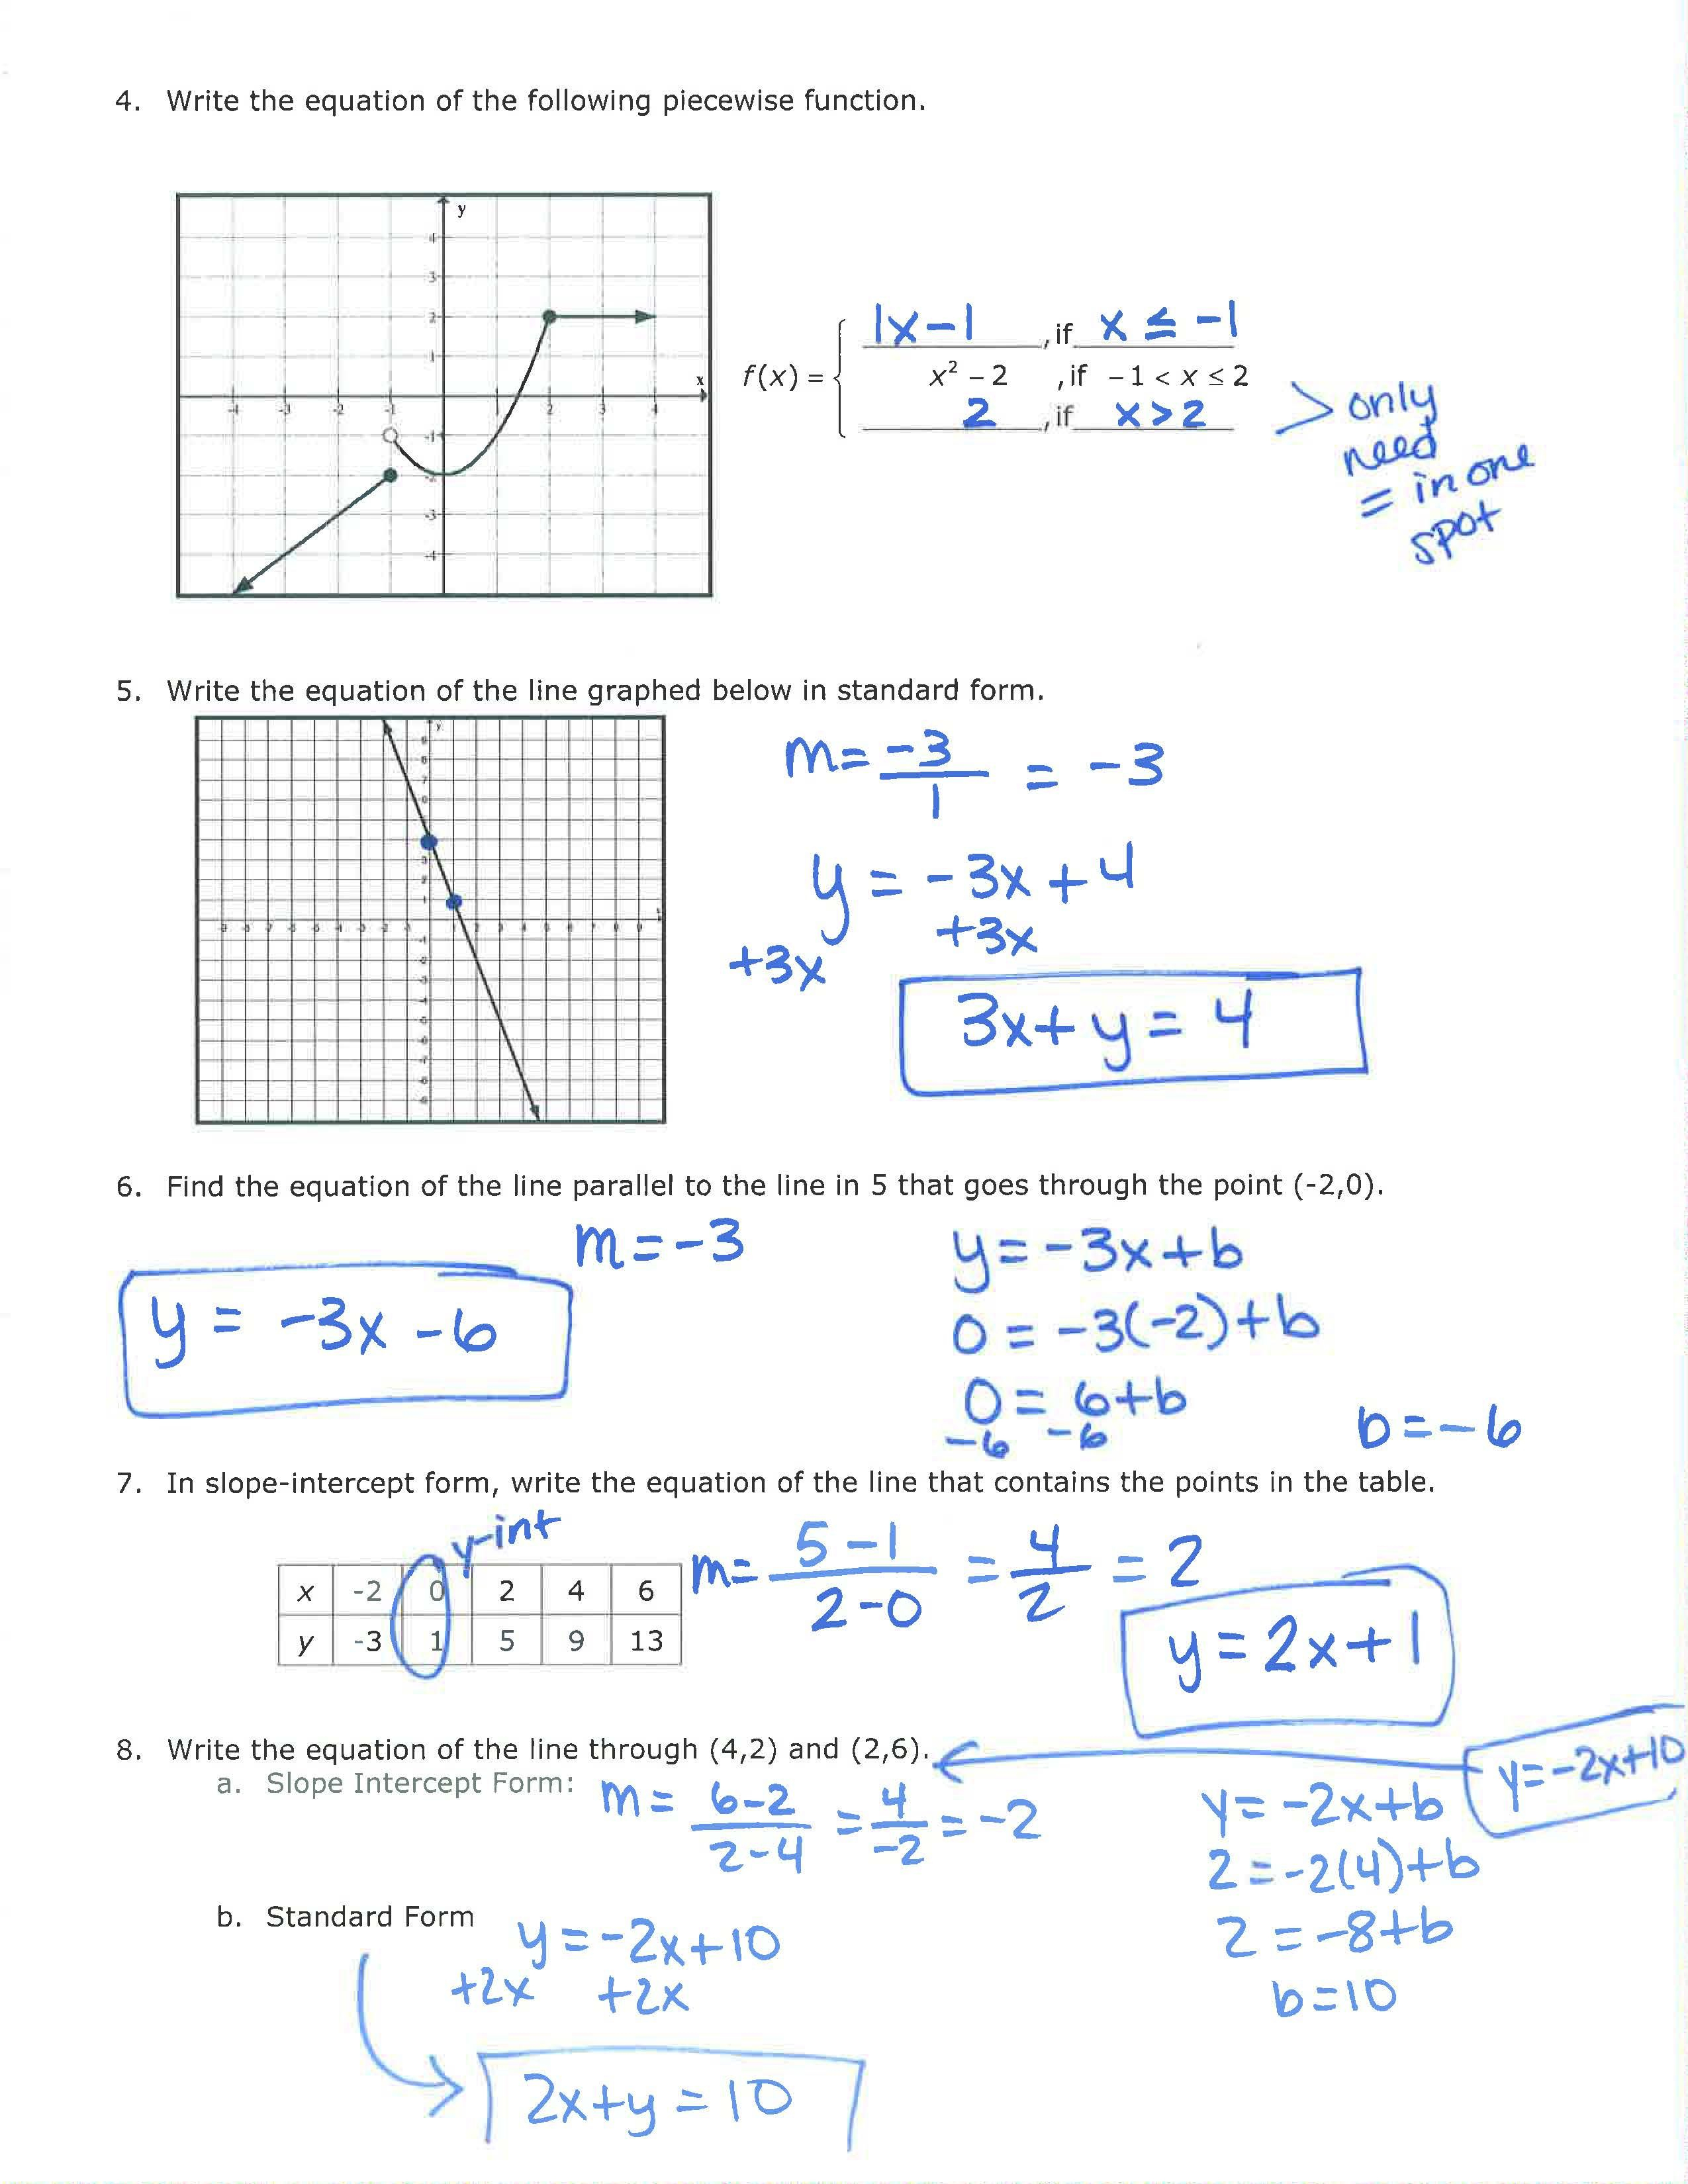 Unit 1 Page 2 Review Answers | Algebra 2 Keys | Algebra, Algebra 2 - Algebra 2 Crossword Puzzles Printable